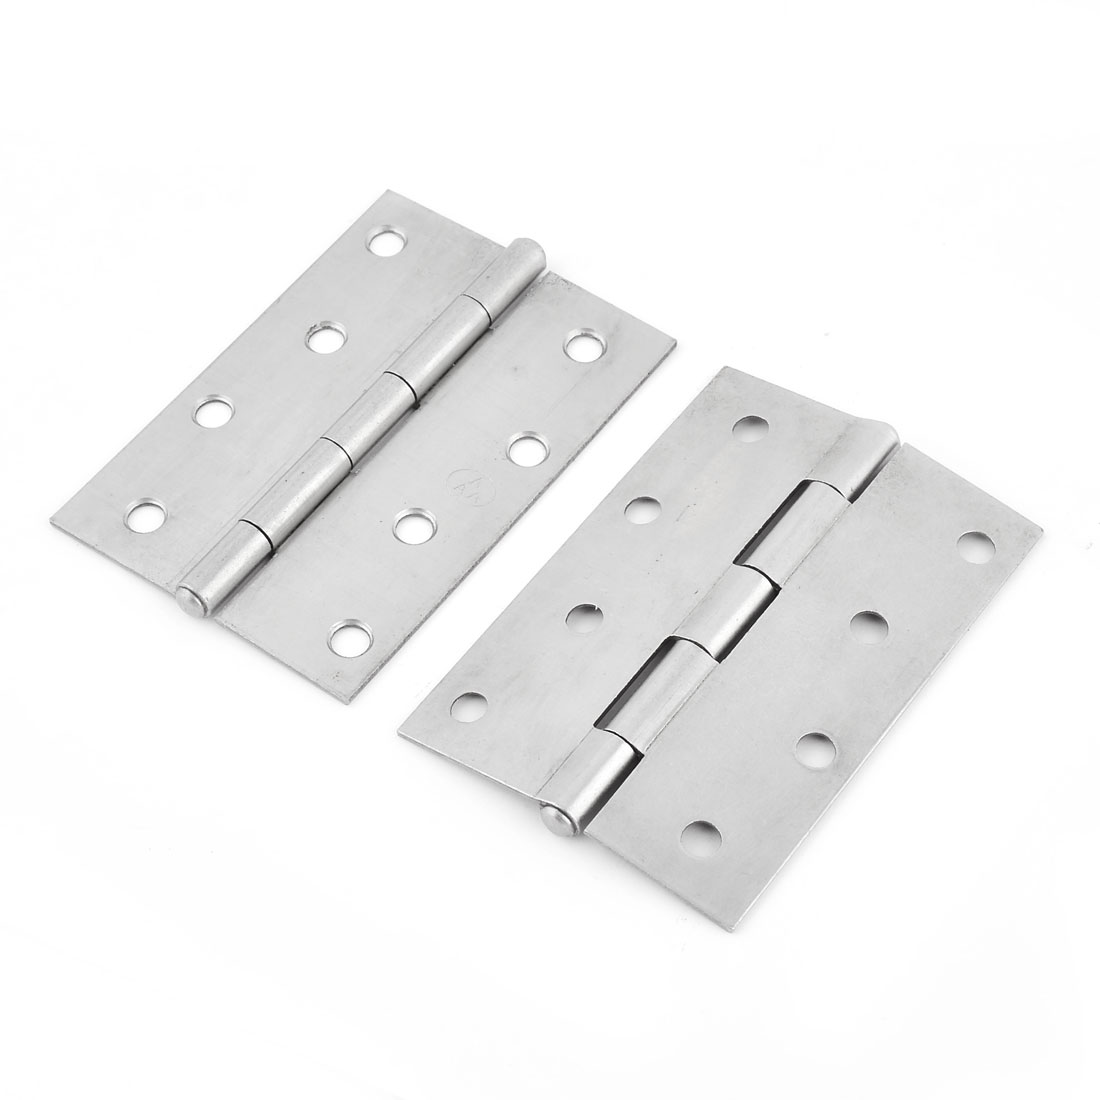 Home Furniture Wardrobe Cabinet 100mm Long Iron Door Butt Hinge Silver Tone 2 PCS